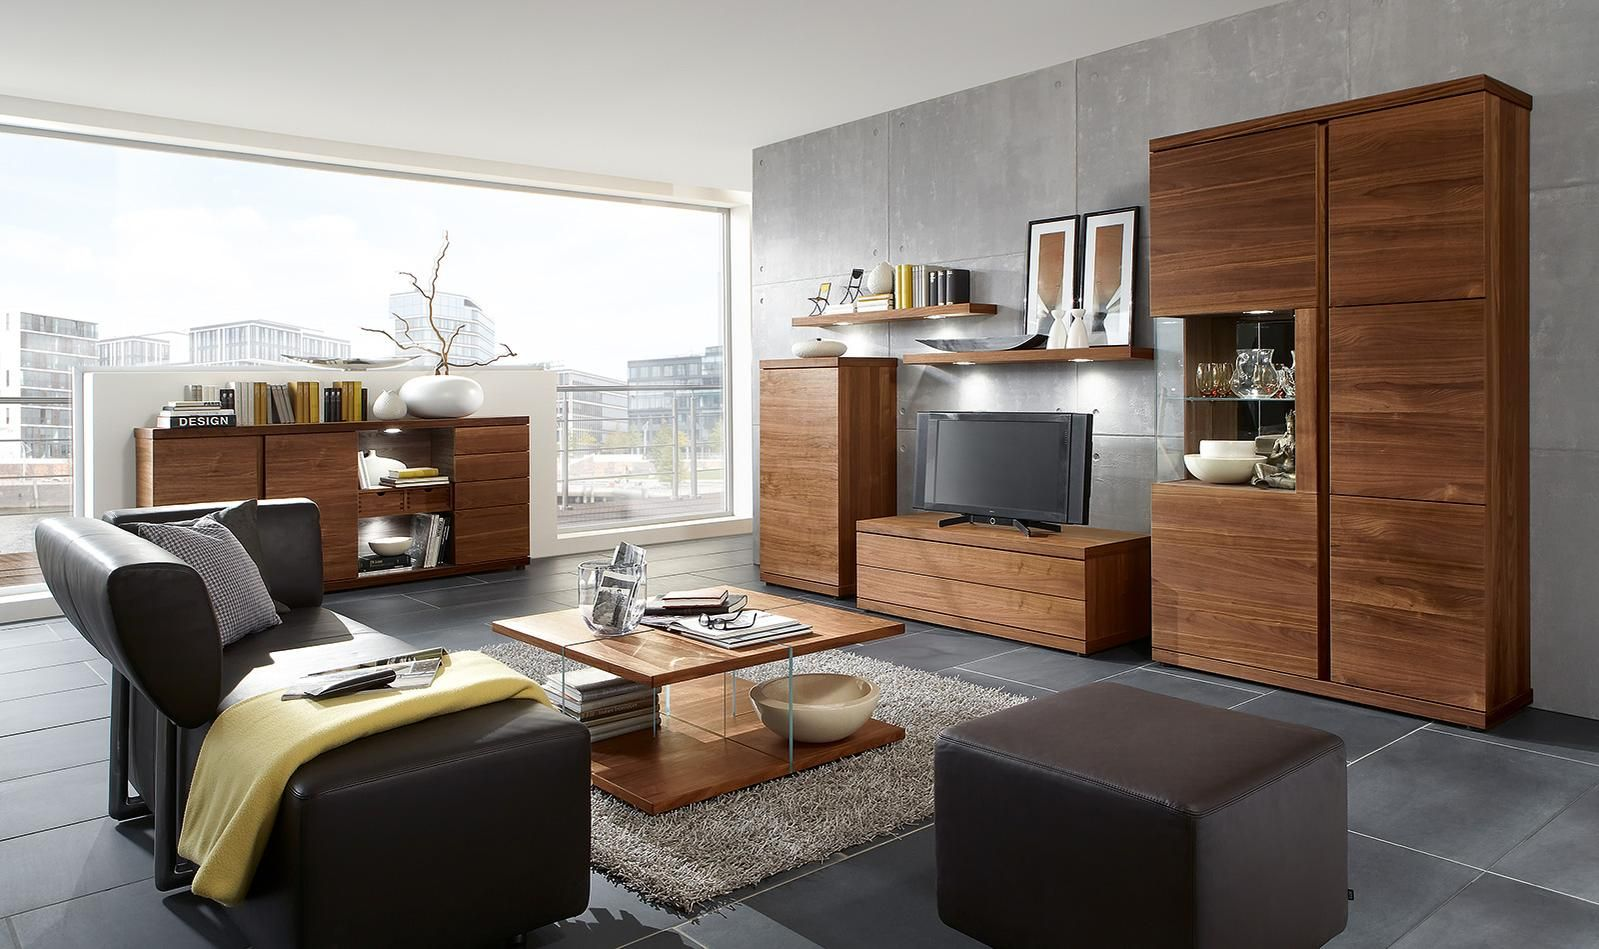 v plus 6 0 programme wohnzimmer venjakob m bel for. Black Bedroom Furniture Sets. Home Design Ideas